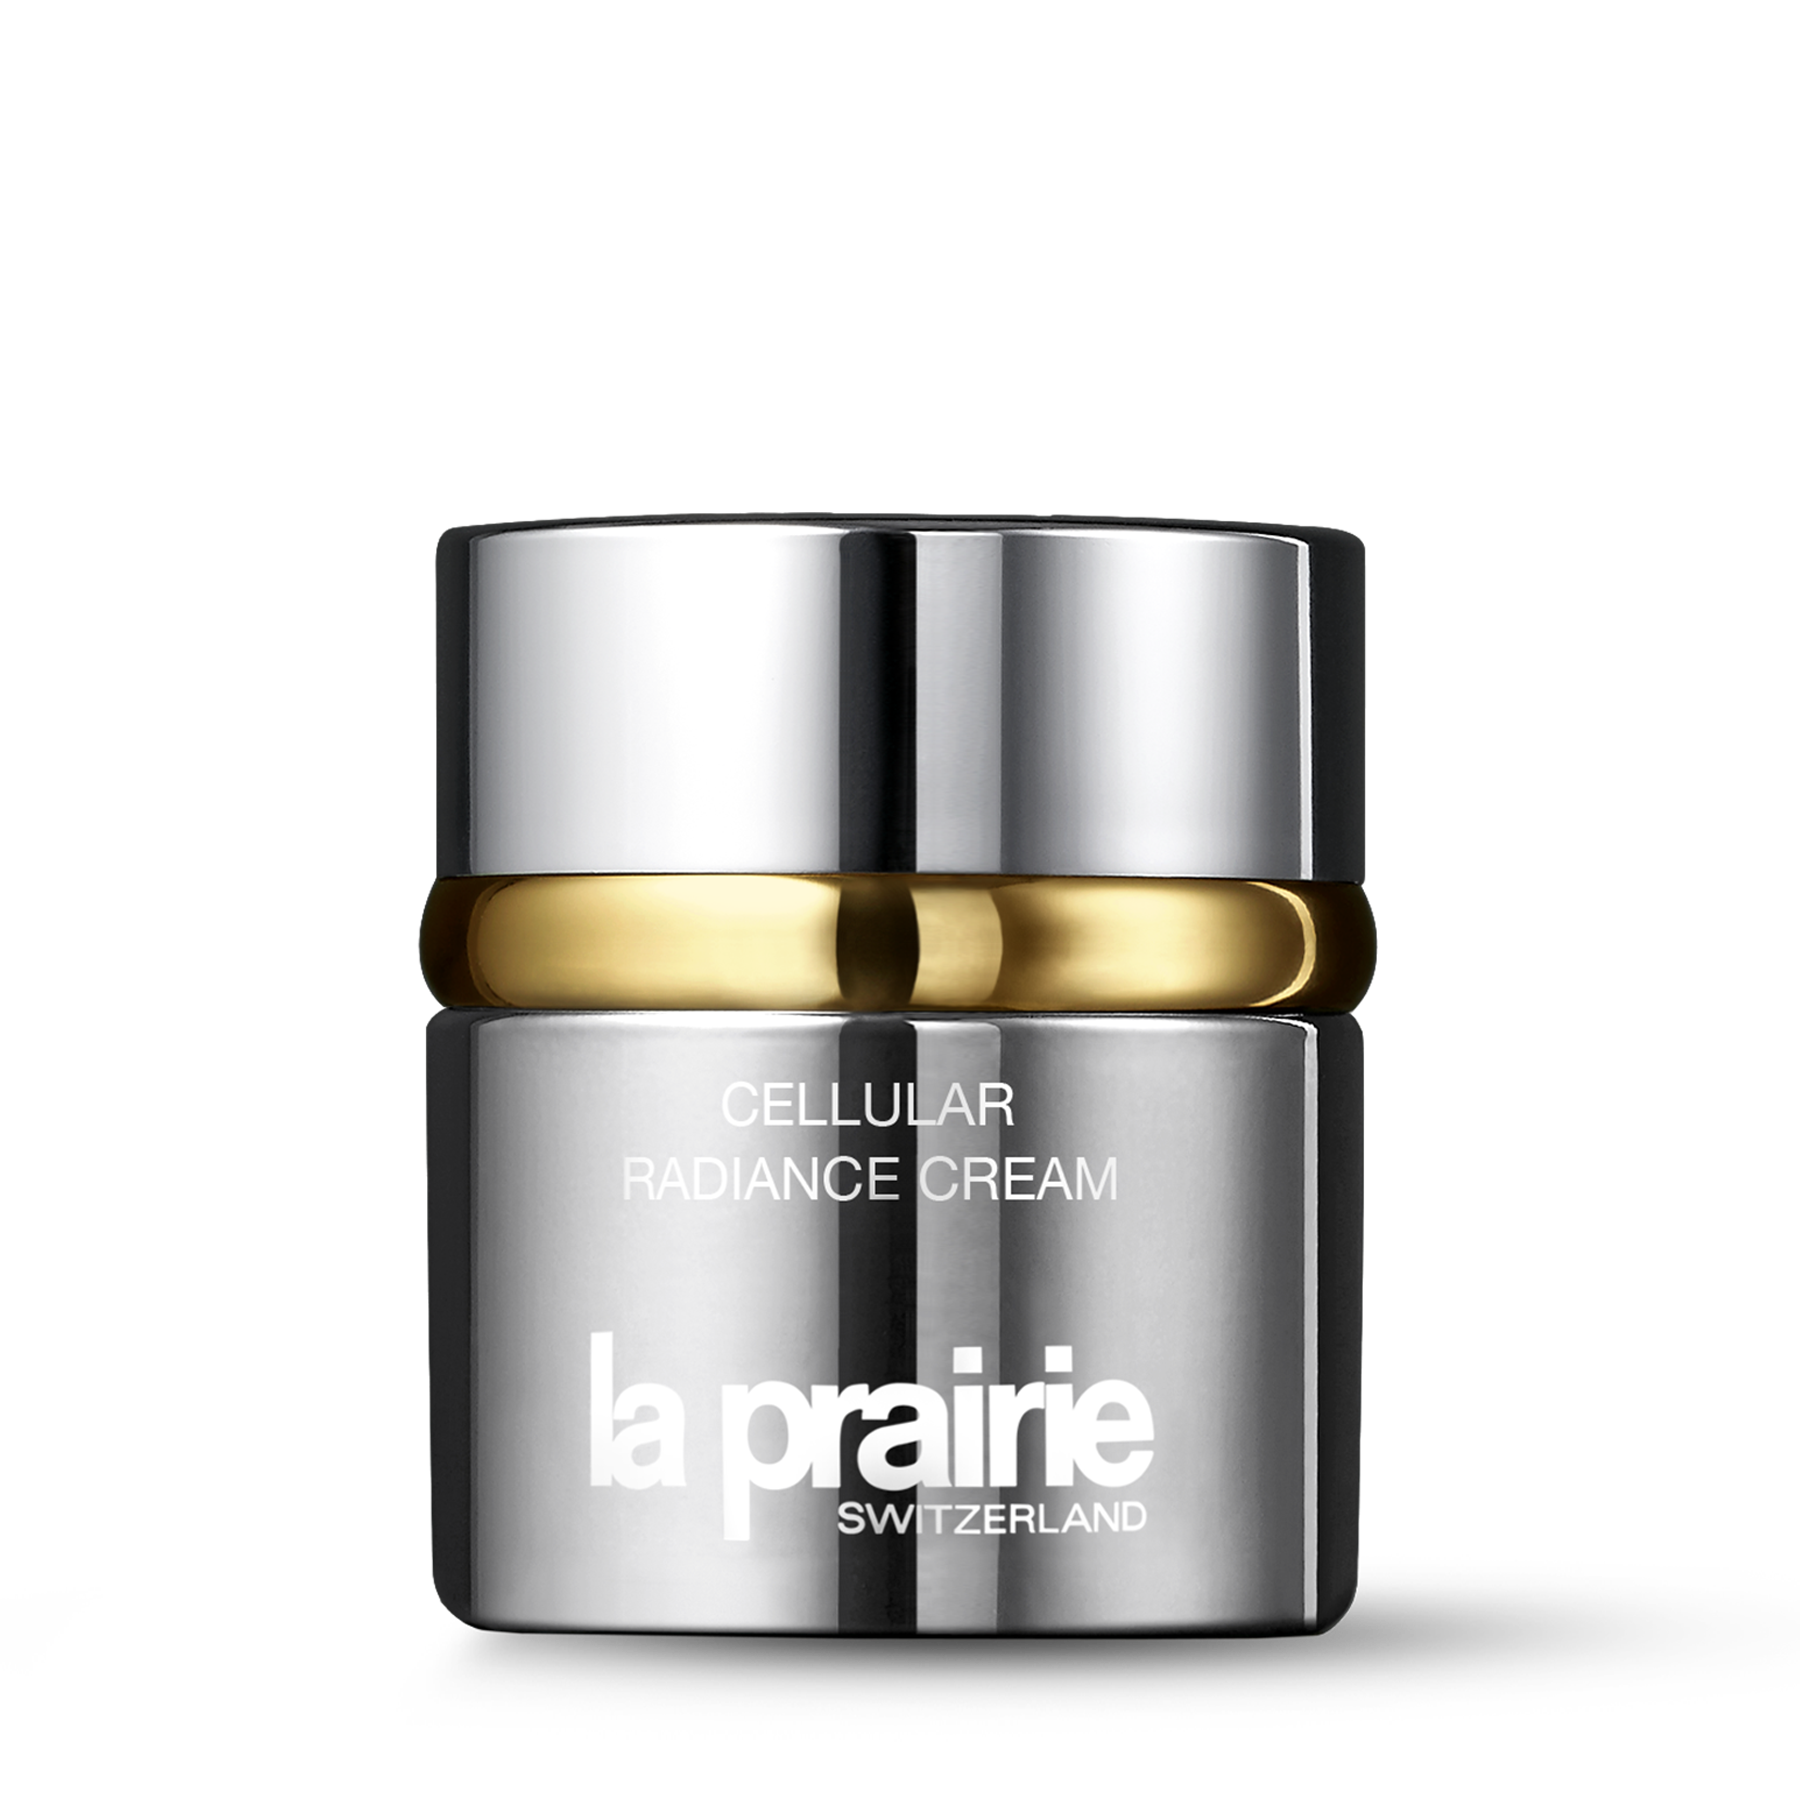 La Prairie Cellular Radiance Cream 50 ml